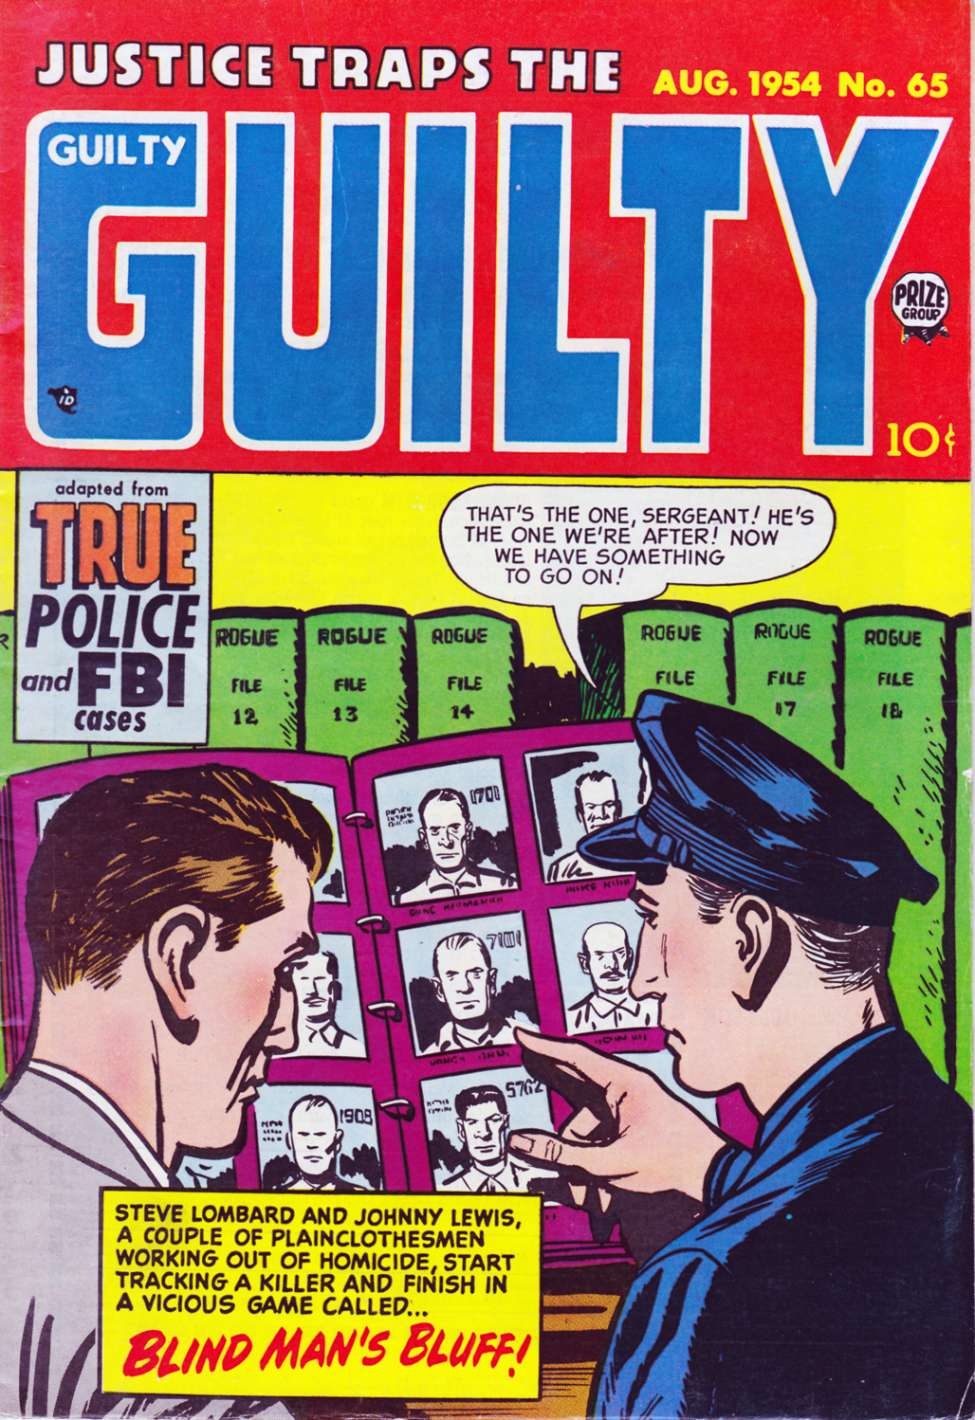 Comic Book Cover For Justice Traps the Guilty v7 11 (65)